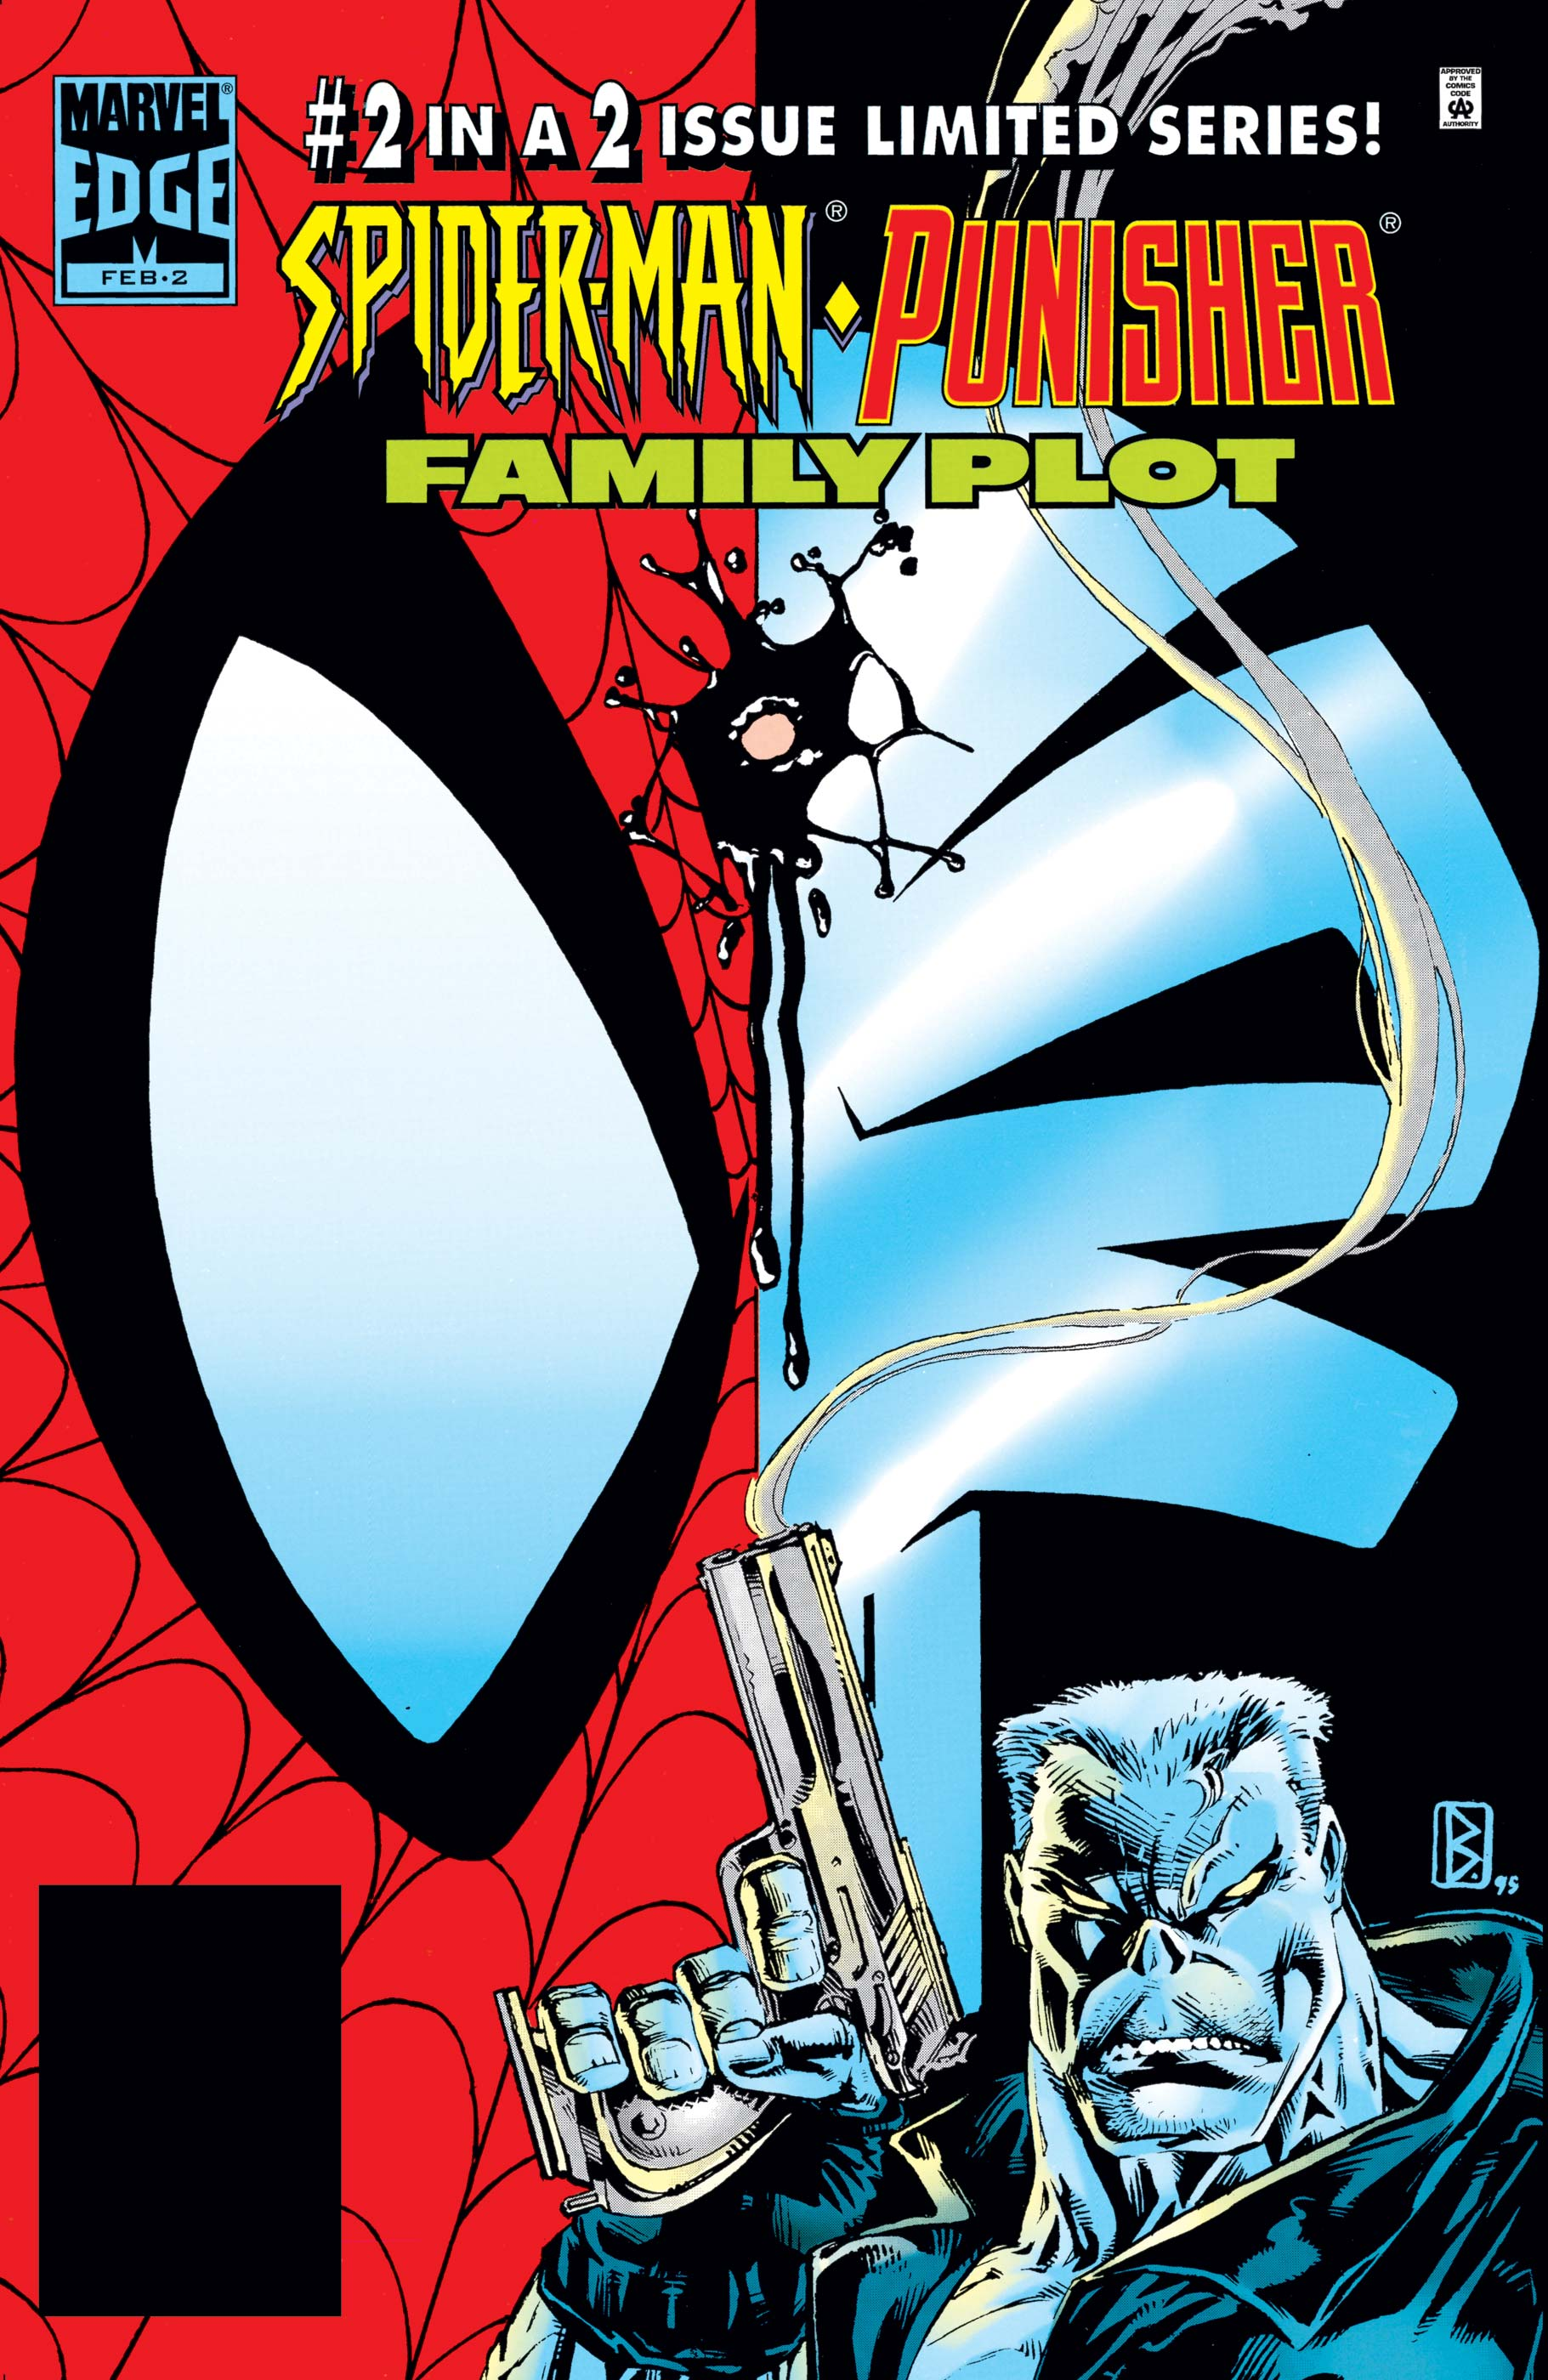 Spider-Man/Punisher: Family Plot (1996) #2